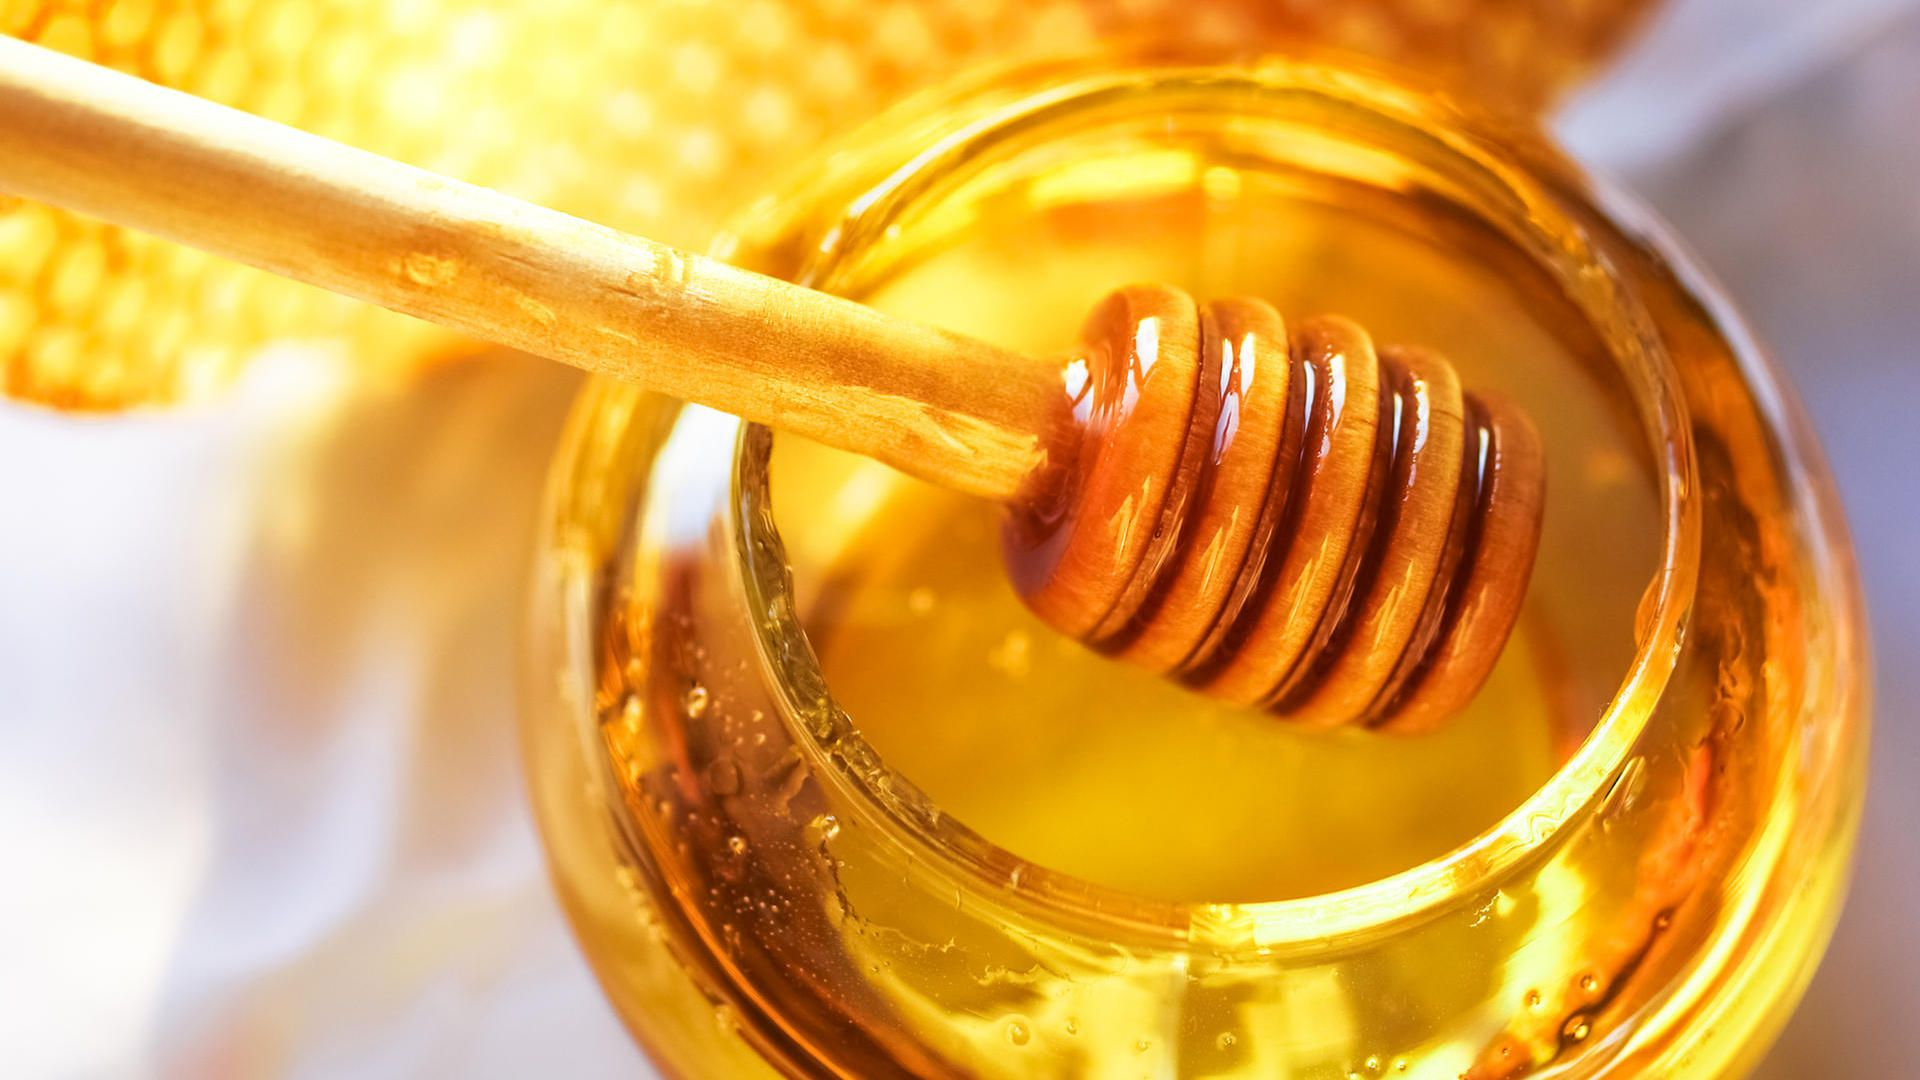 Honey vertical wallpaper hd